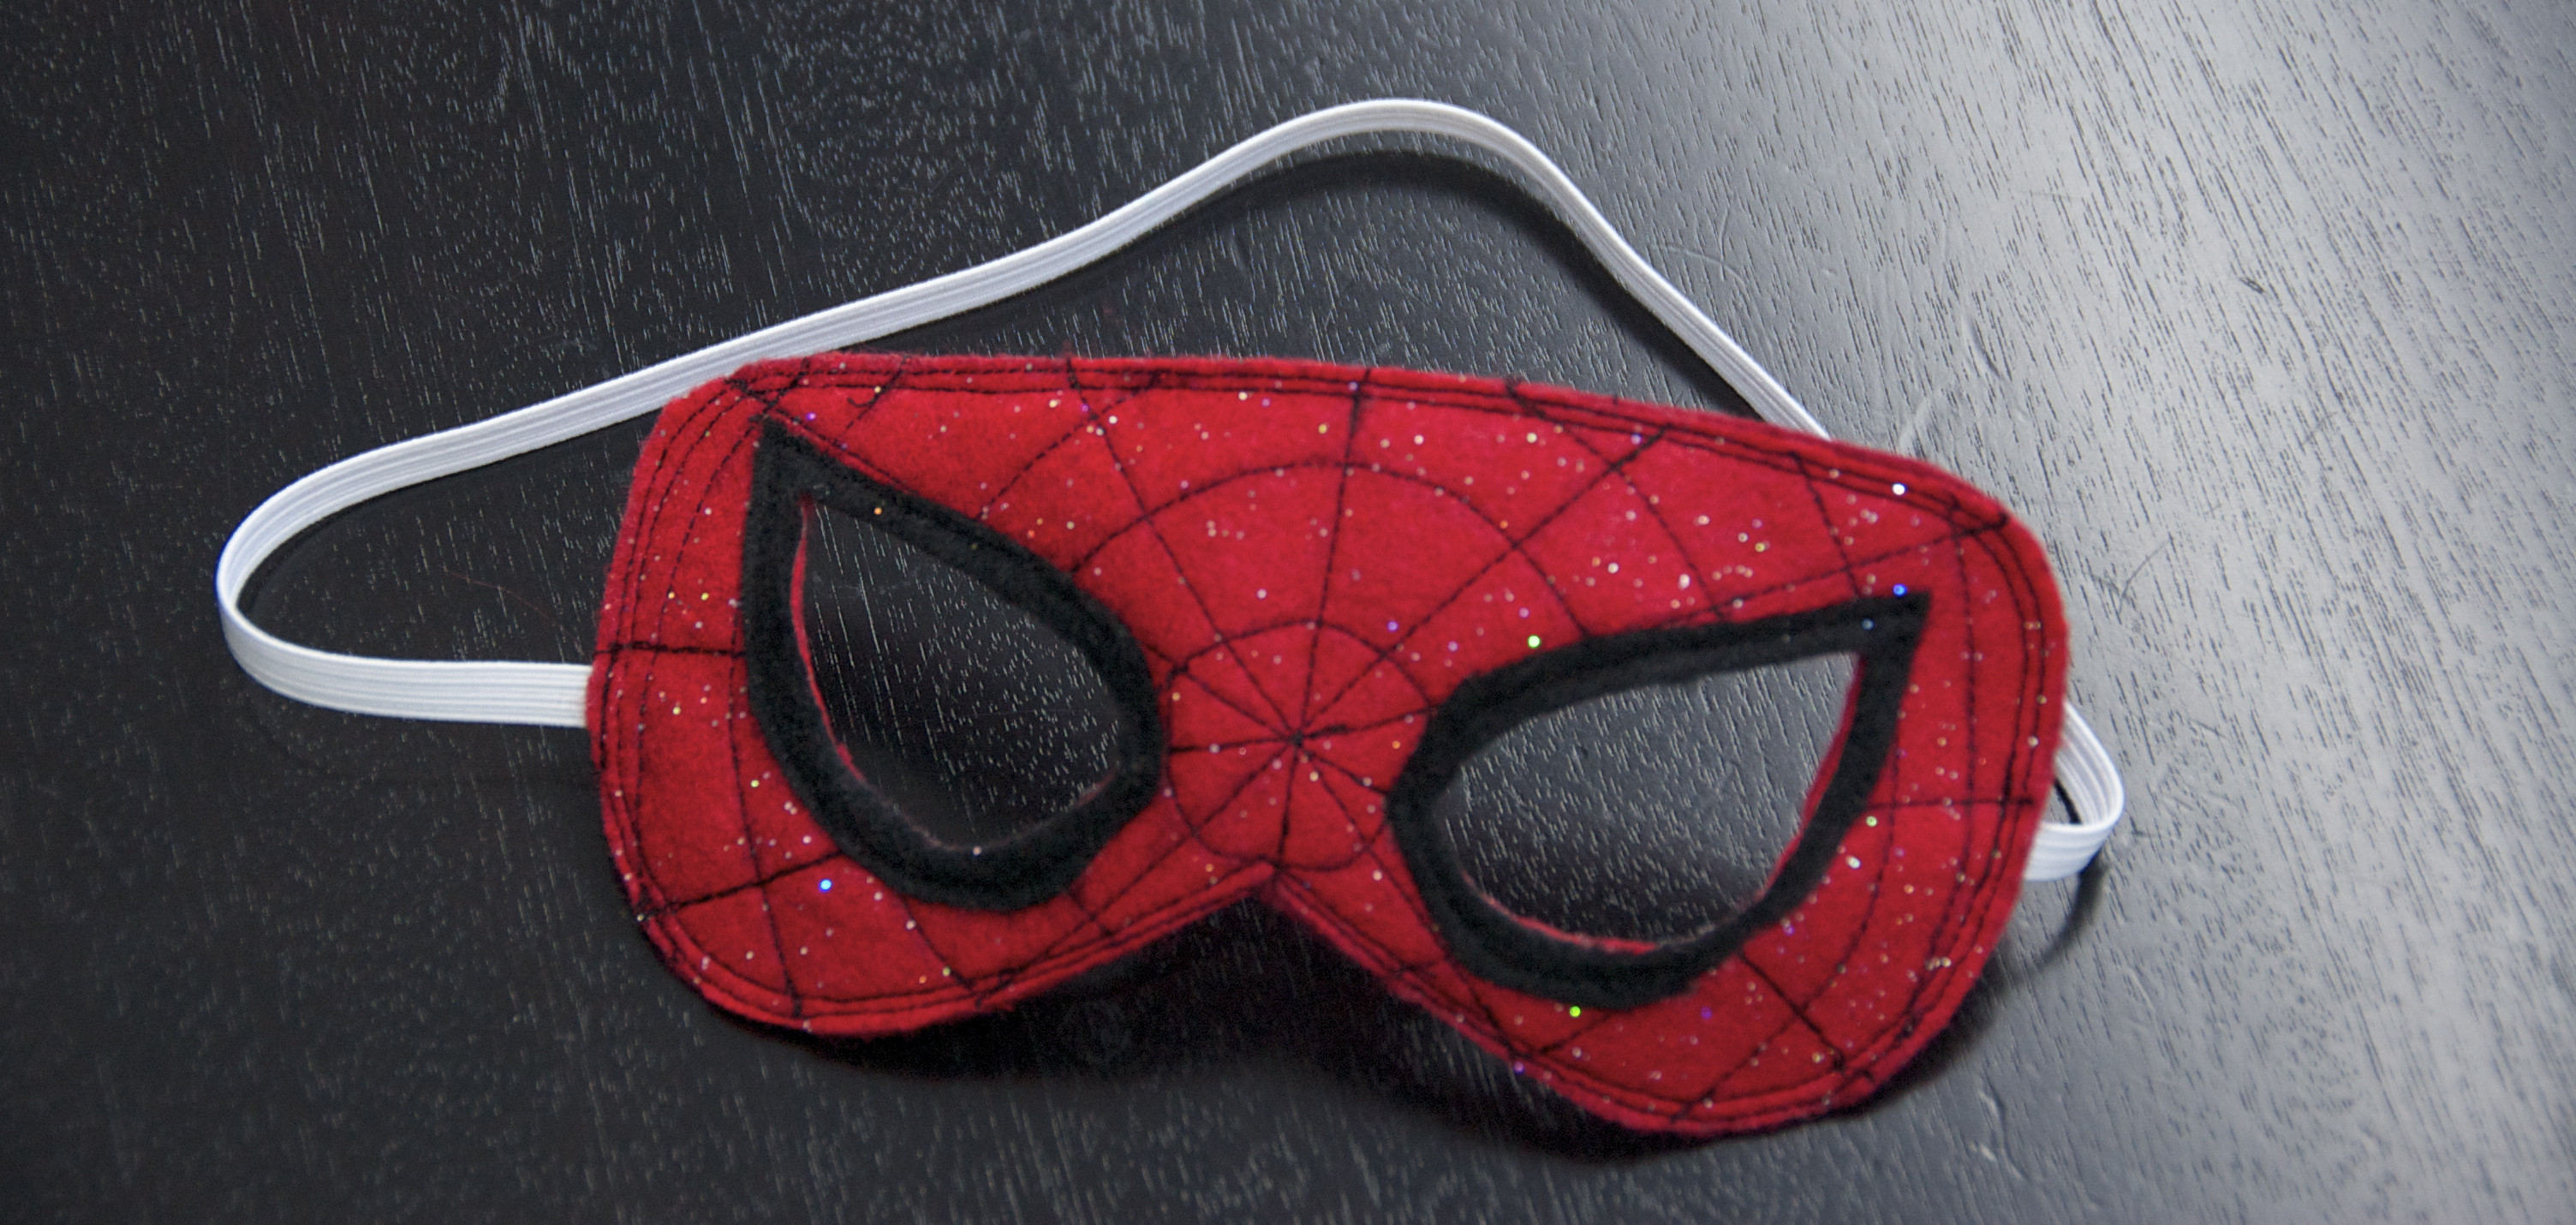 Best ideas about DIY Spiderman Mask . Save or Pin DIY Spiderman Mask Now.